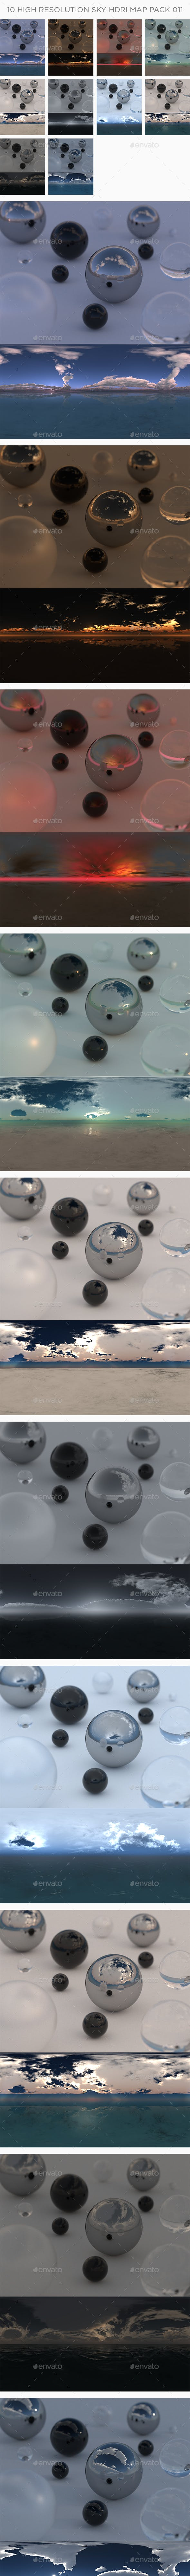 10 High Resolution Sky HDRi Maps Pack 011 - 3DOcean Item for Sale